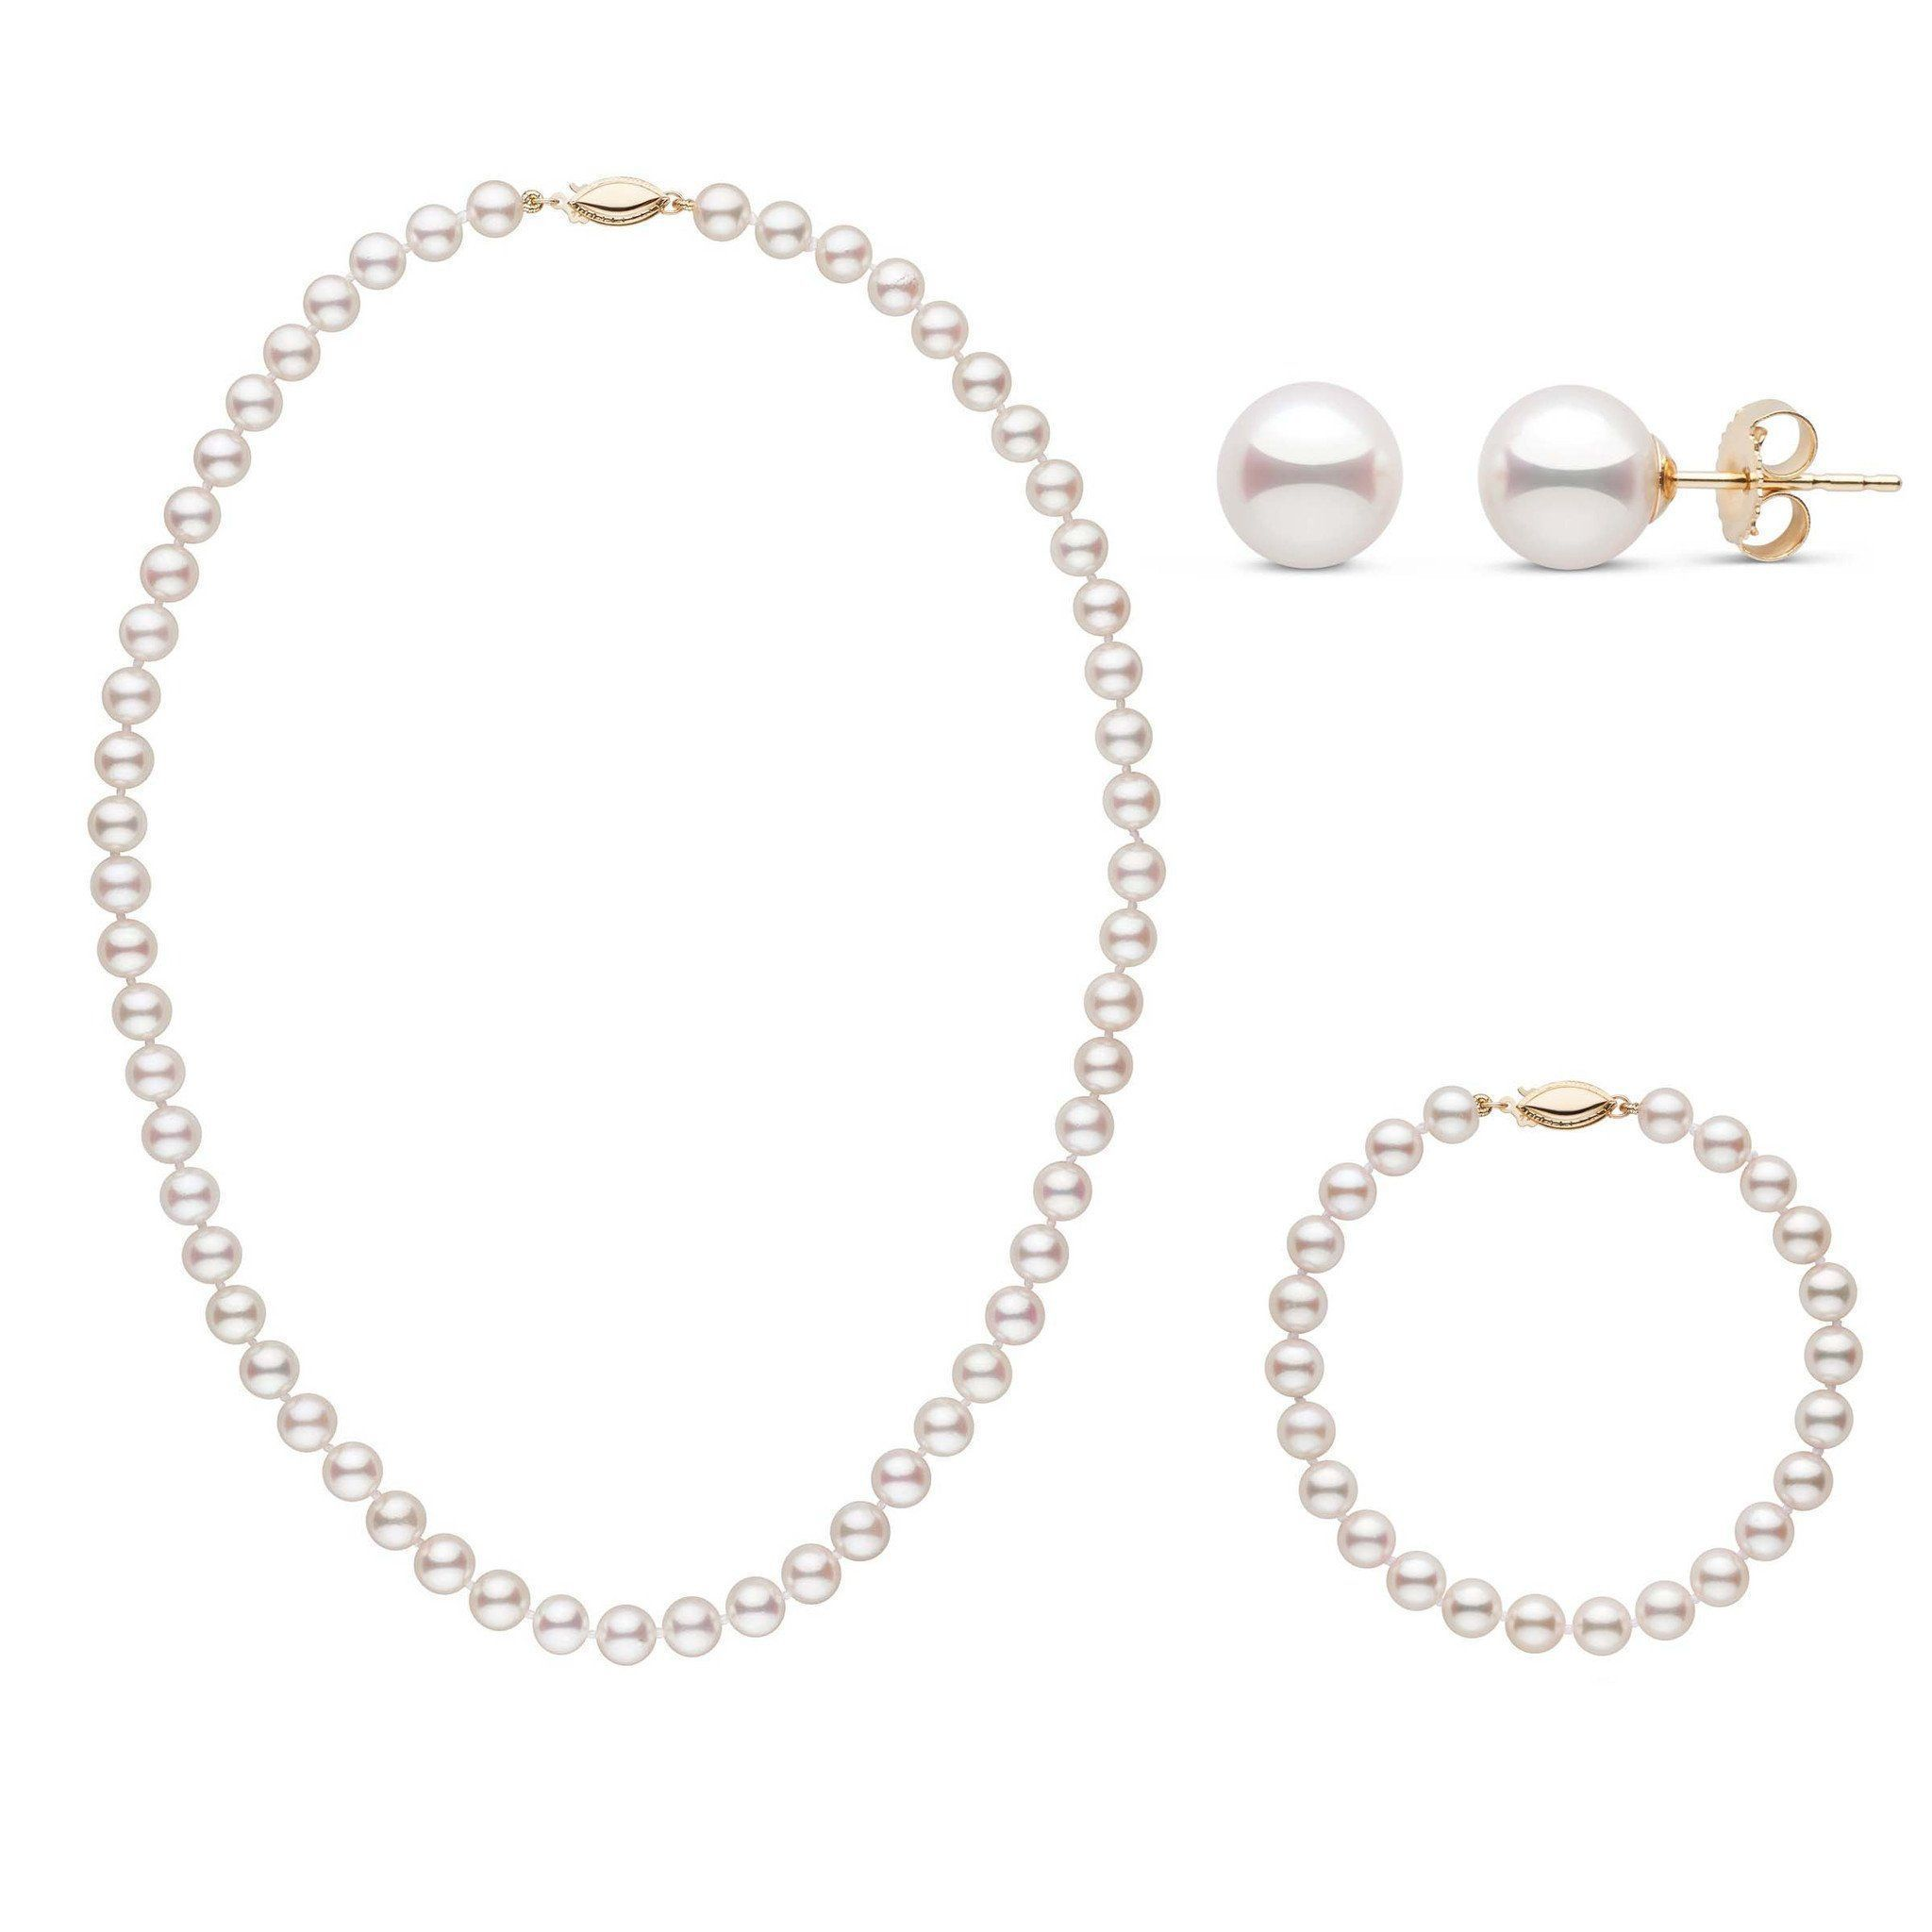 16 Inch 3 Piece Set of 6.5-7.0 mm AAA White Akoya Pearls